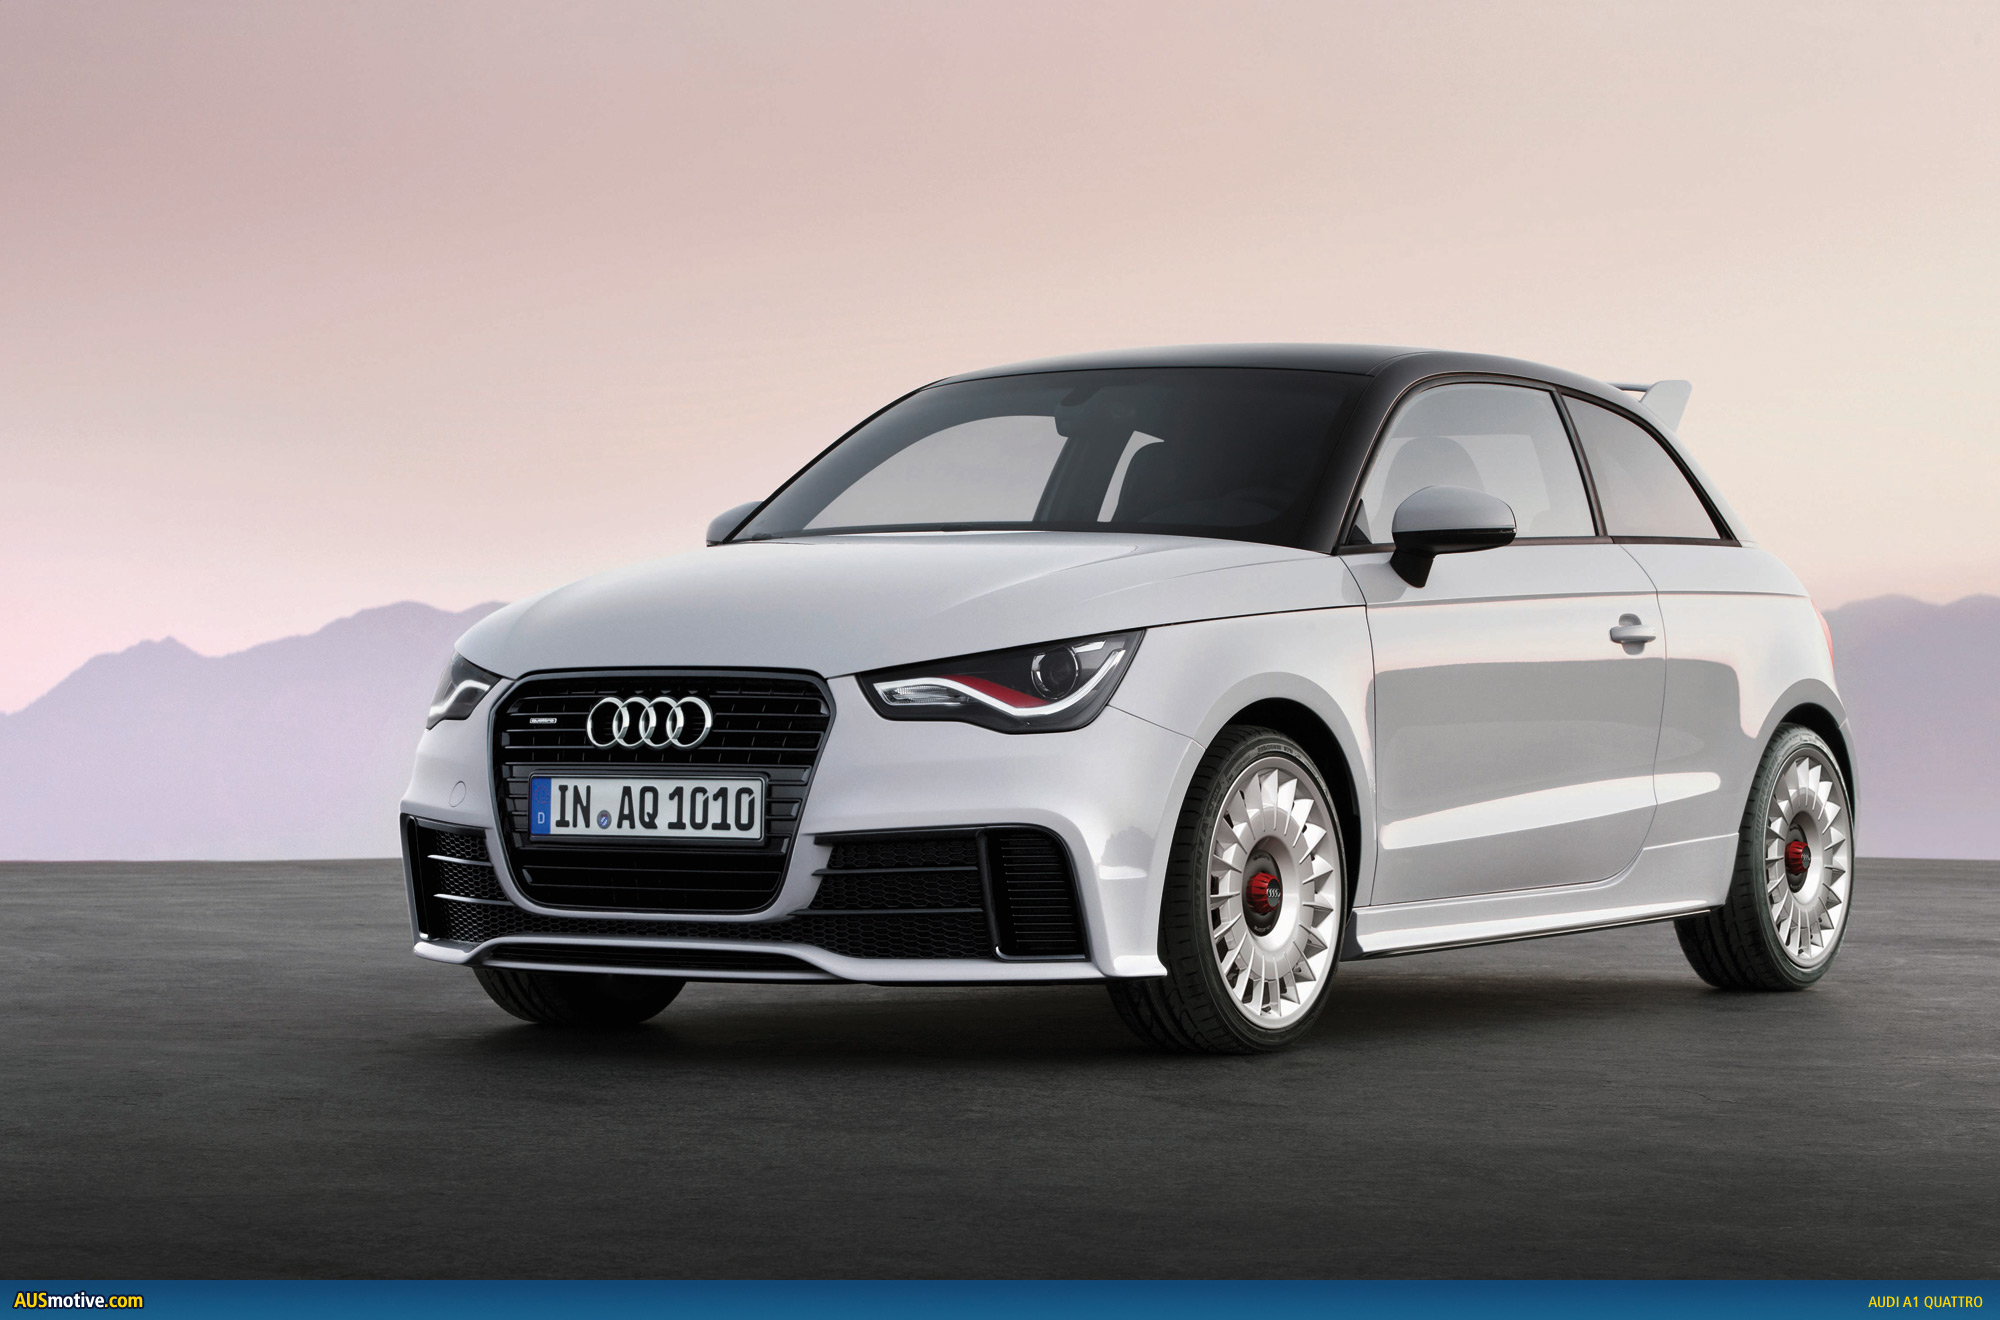 limited edition audi a1 quattro revealed. Black Bedroom Furniture Sets. Home Design Ideas